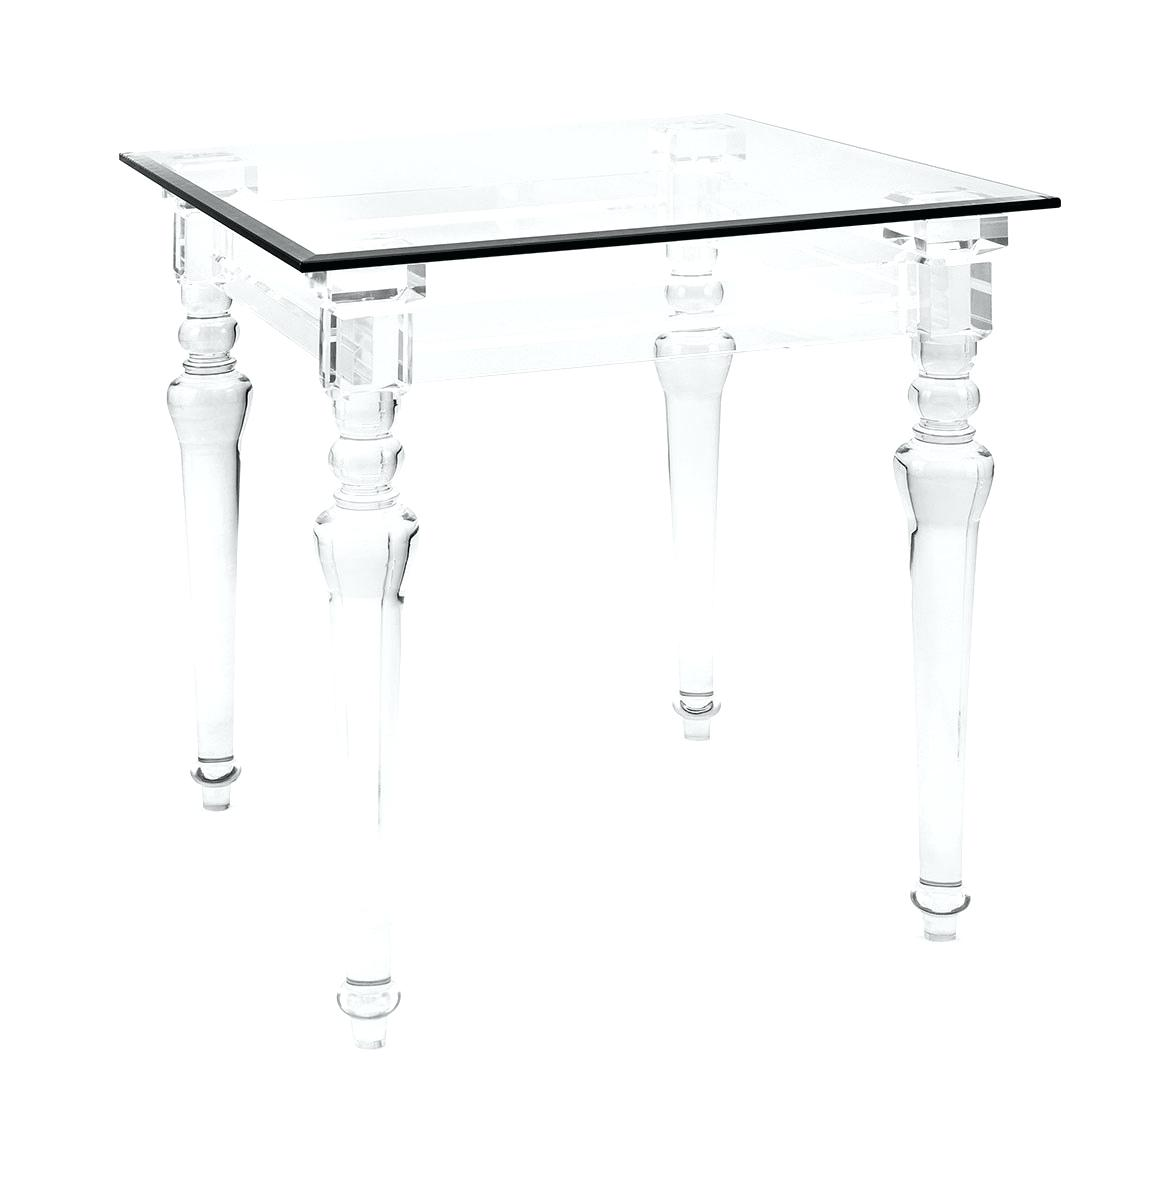 acrylic accent table small pottery barn sconces collapsible side wedding covers colorful lamps storage furniture for spaces bridal shower registry patio modern coffee legs high